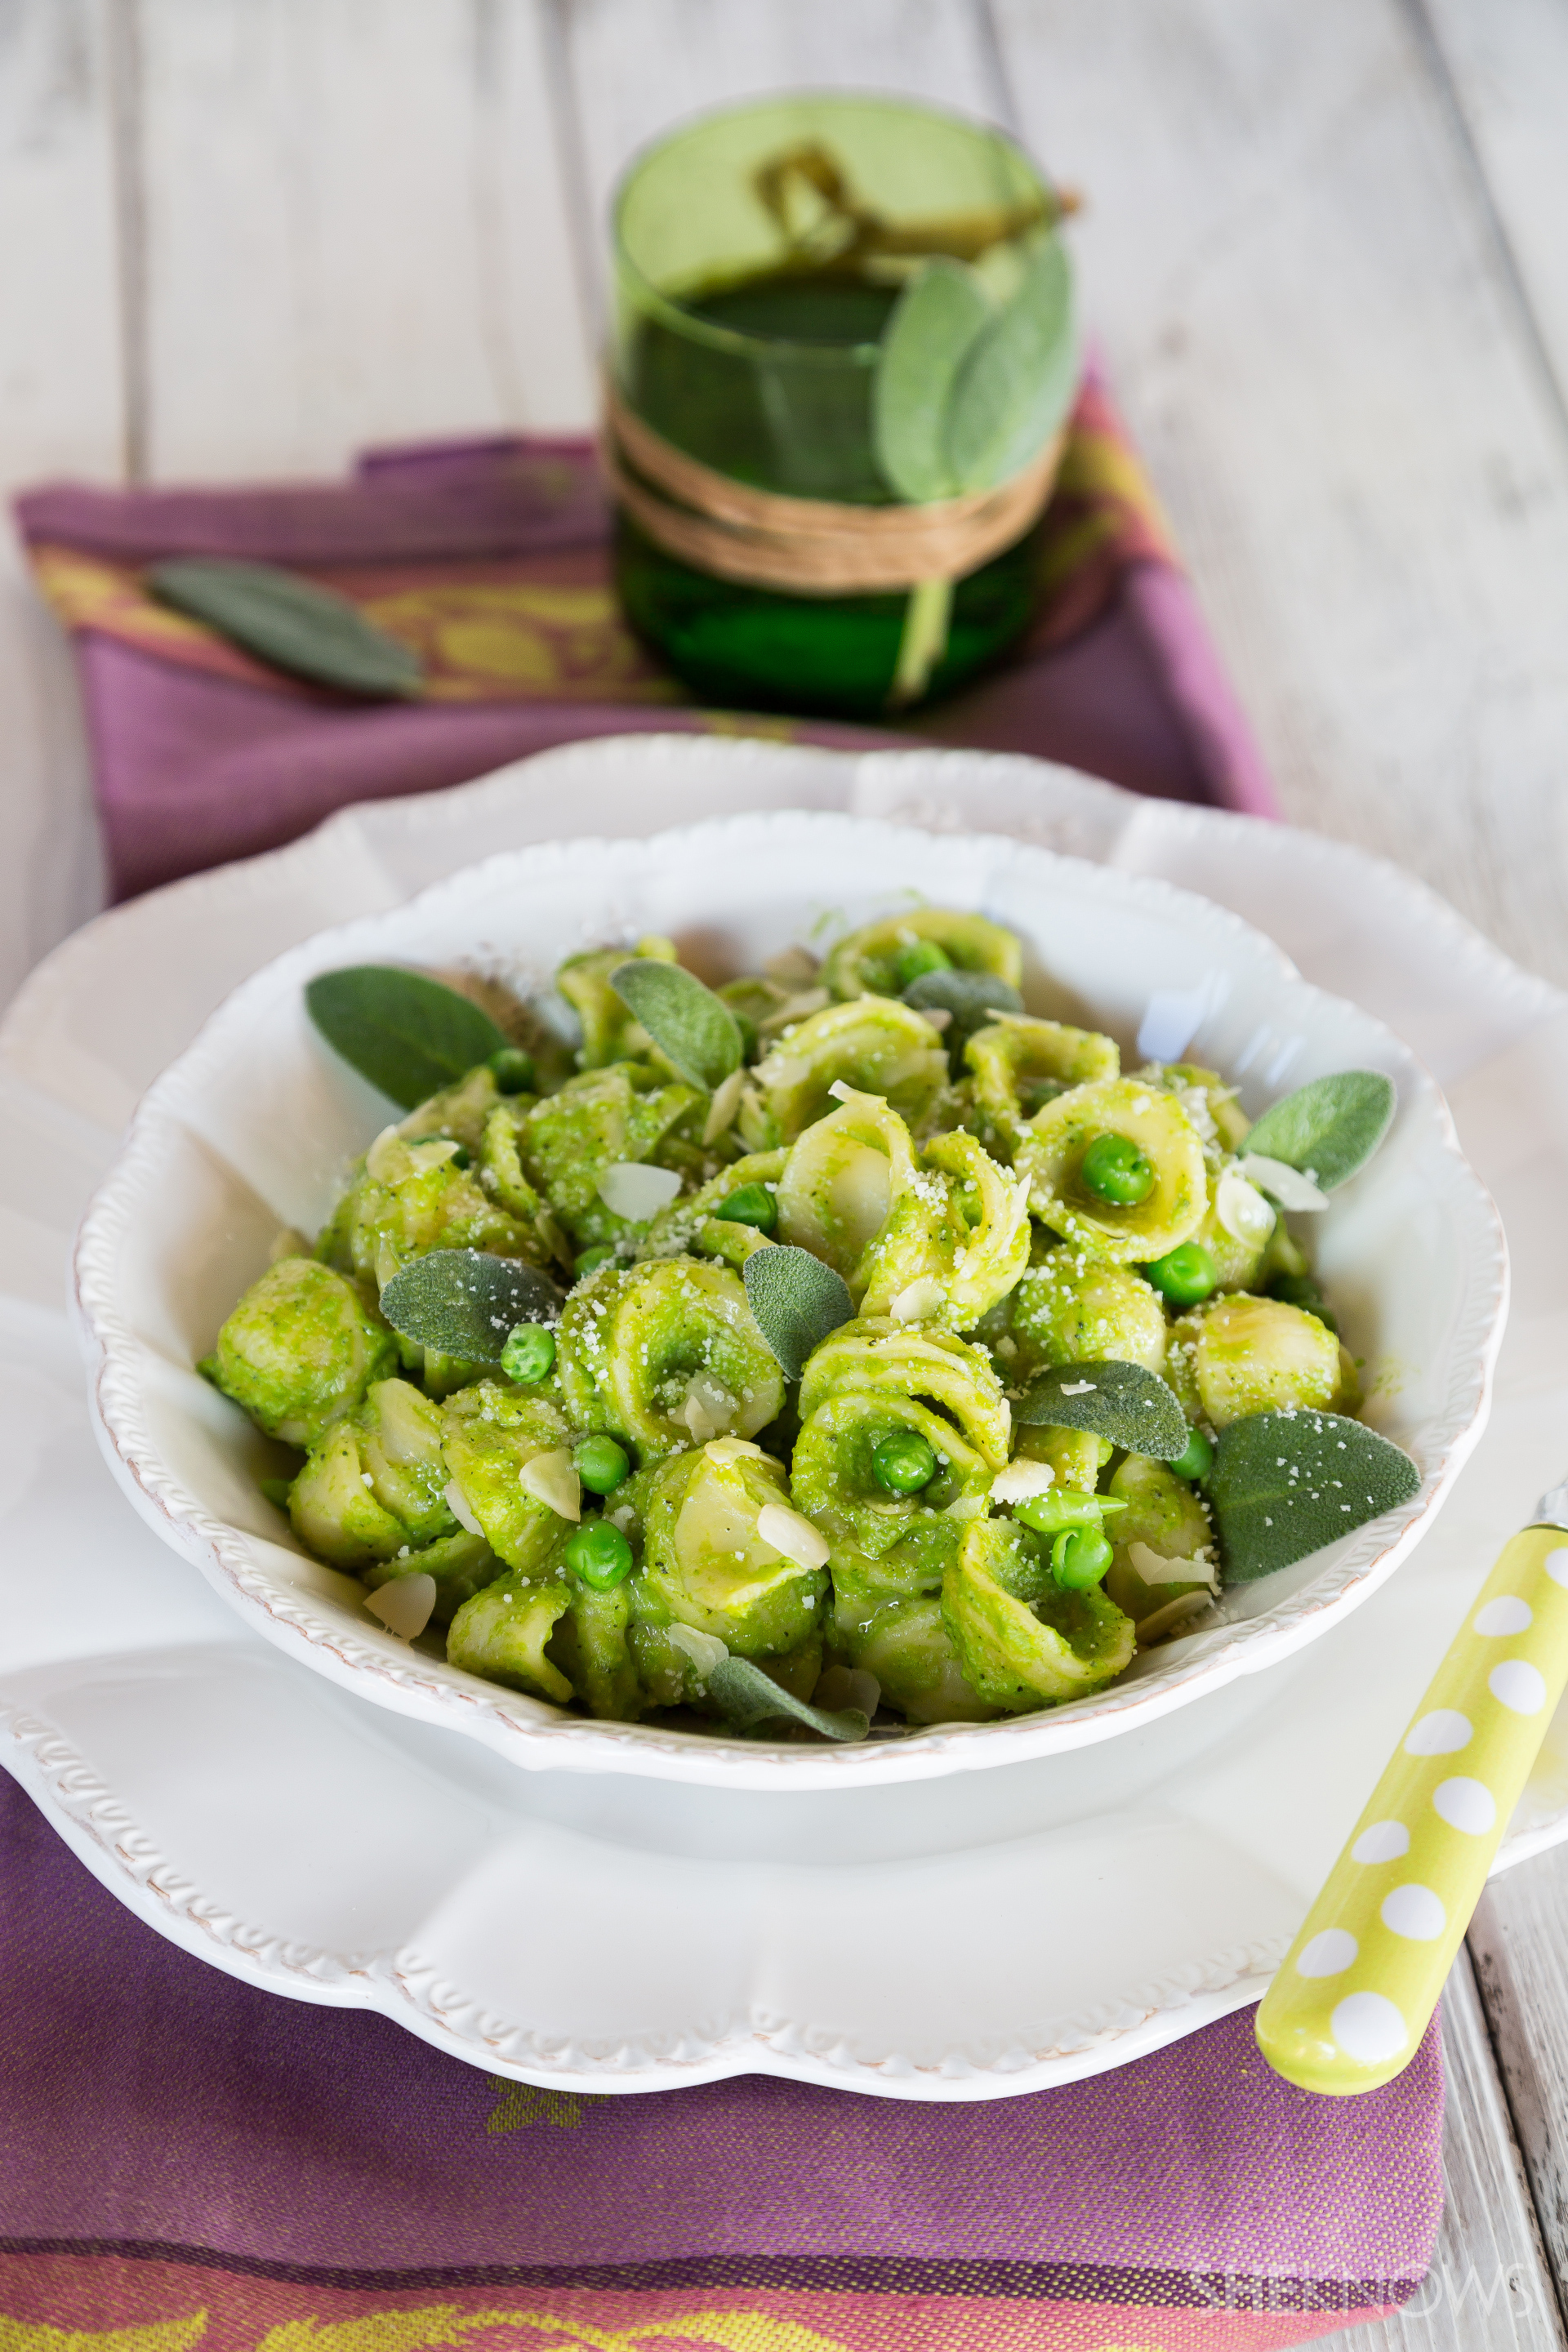 Pesto and pasta for a healthy change